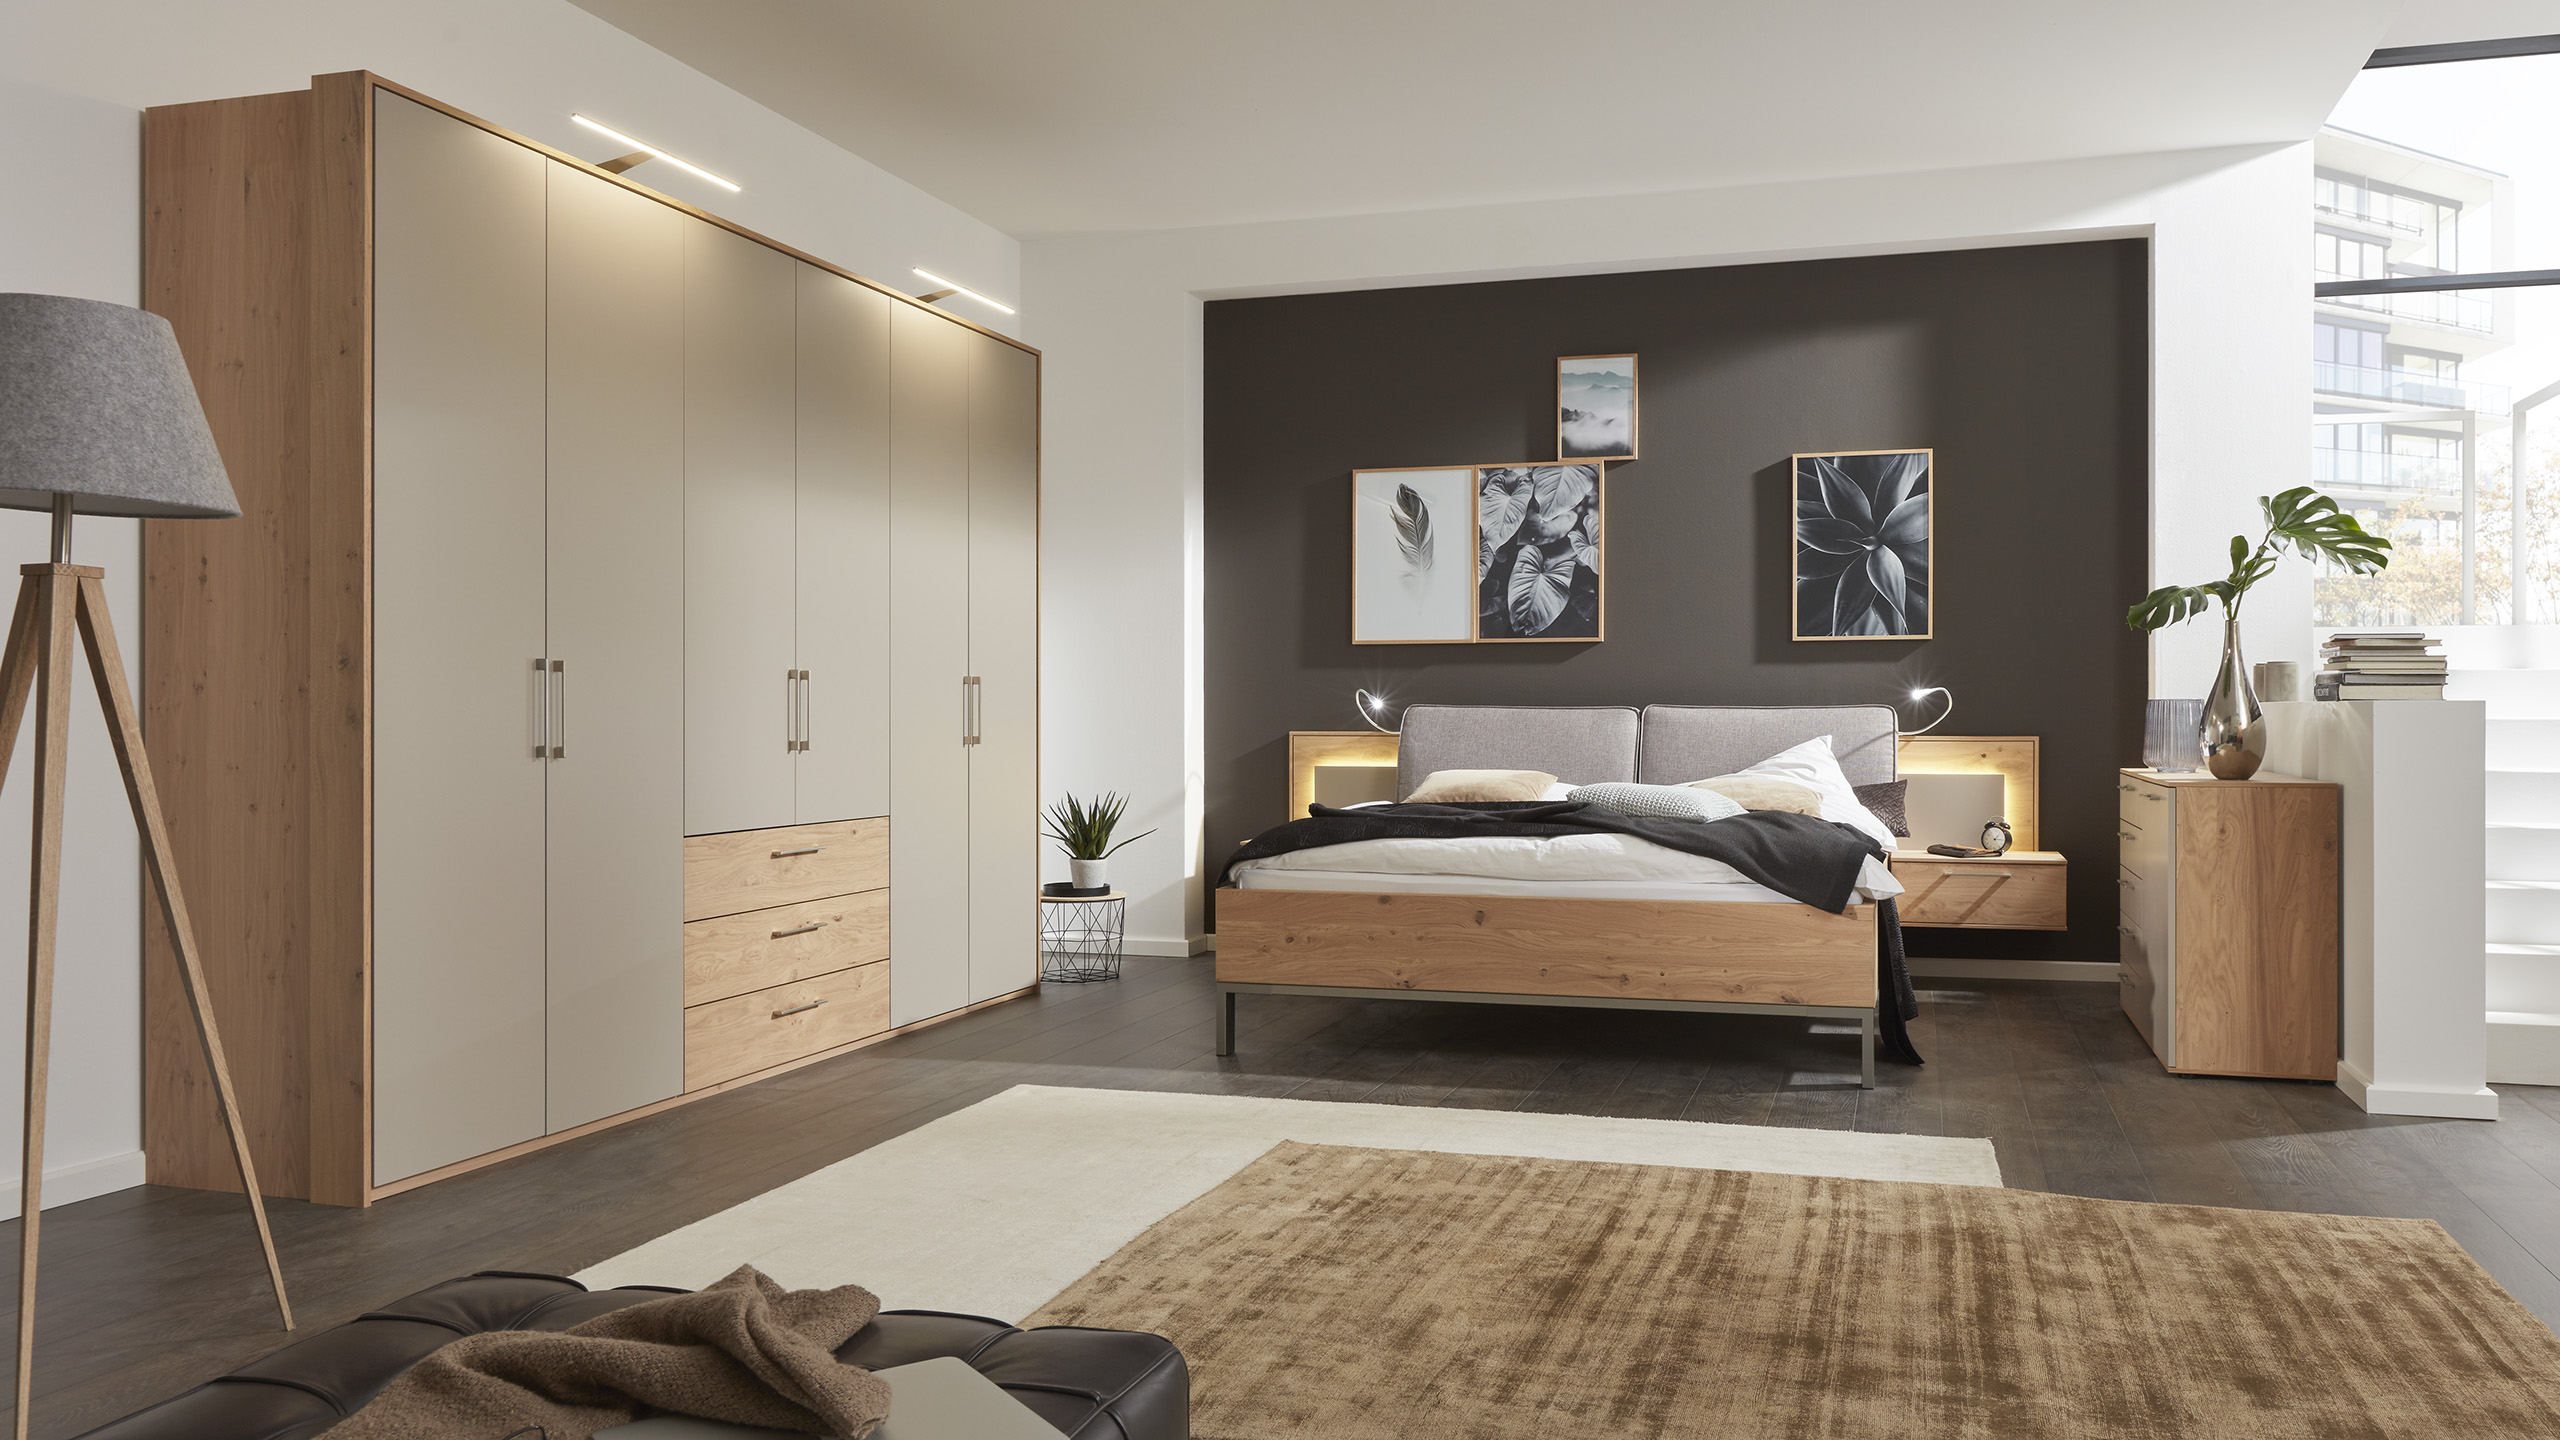 interliving boxspringbett serie 1405 interliving m bel f r mich gemacht. Black Bedroom Furniture Sets. Home Design Ideas